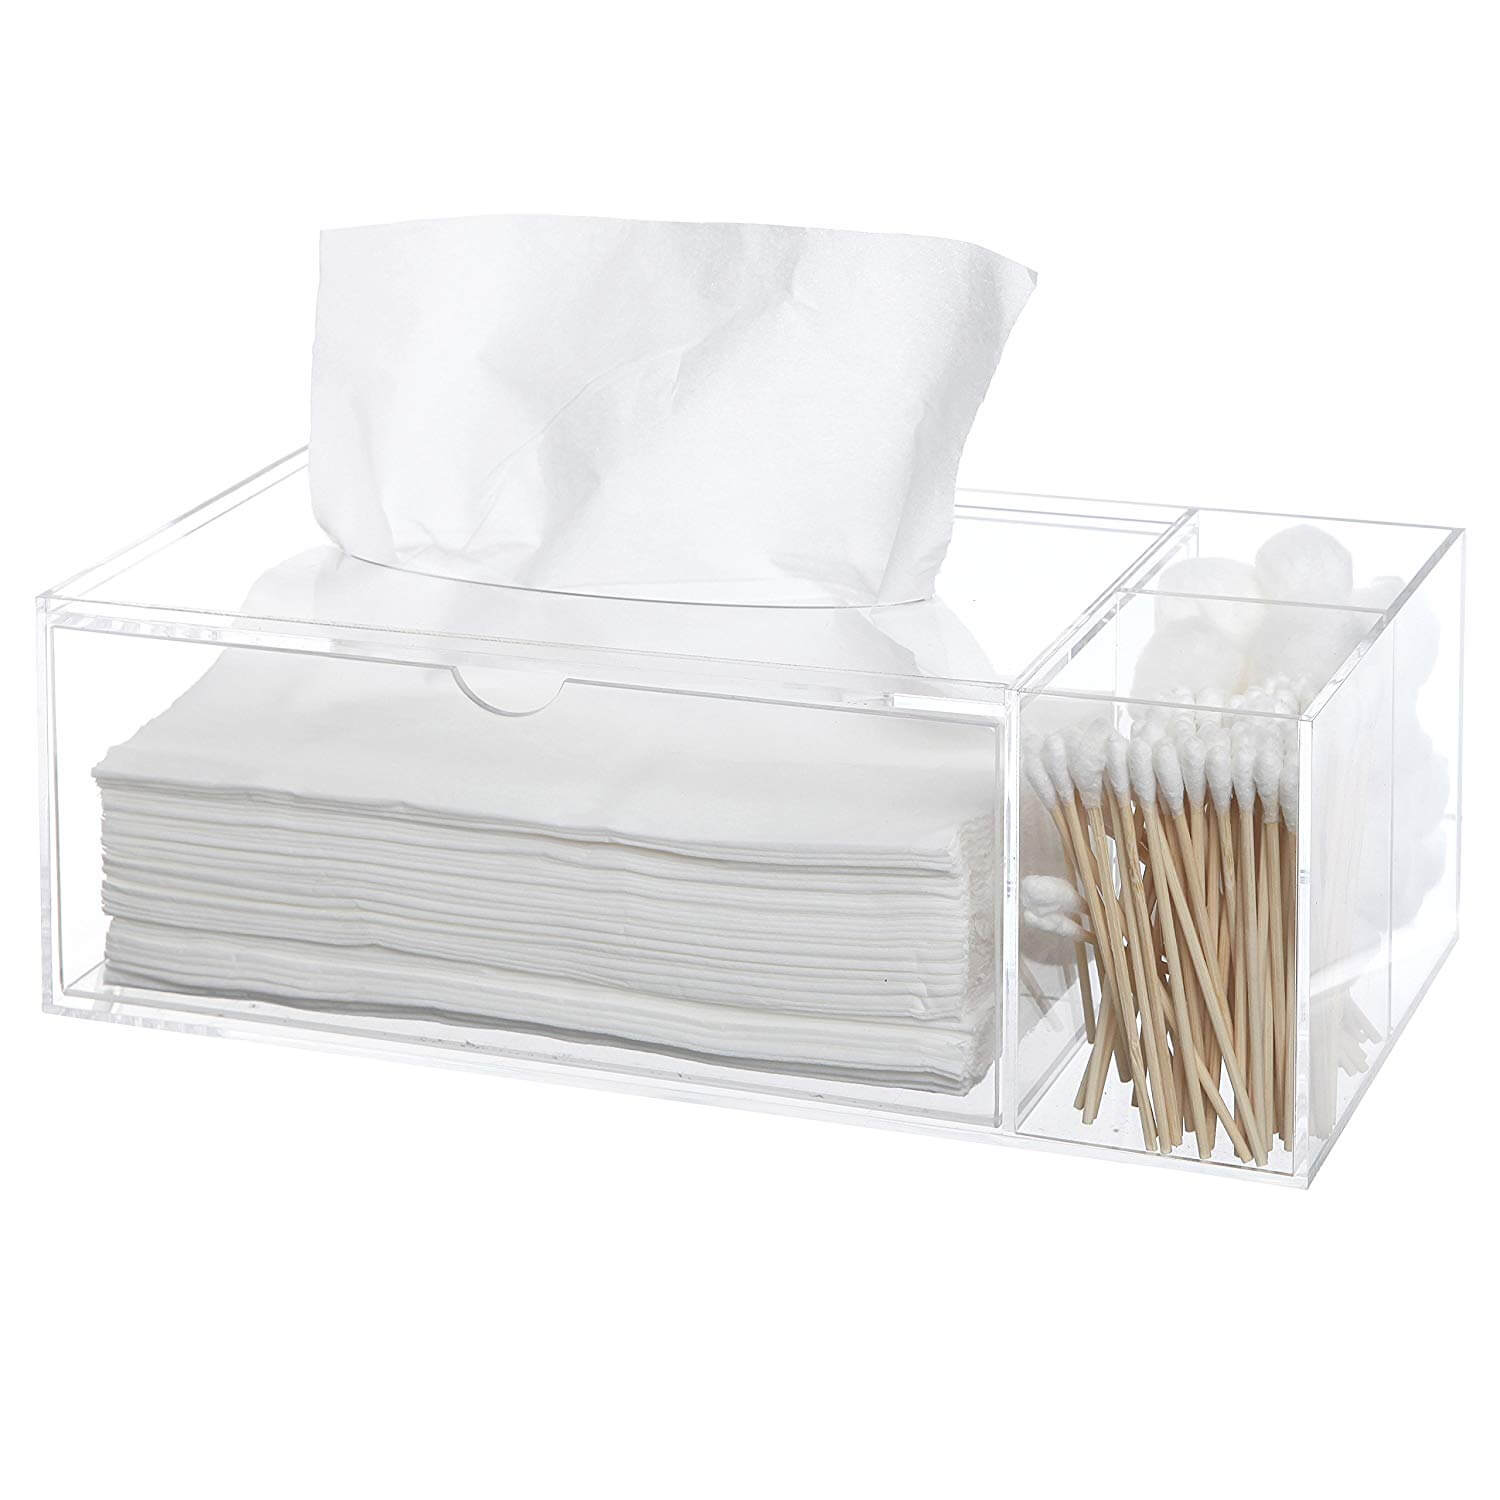 Clear Acrylic Counter Top Multi Compartment Storage Organizer Box Tray w/ Tissue Dispenser Box